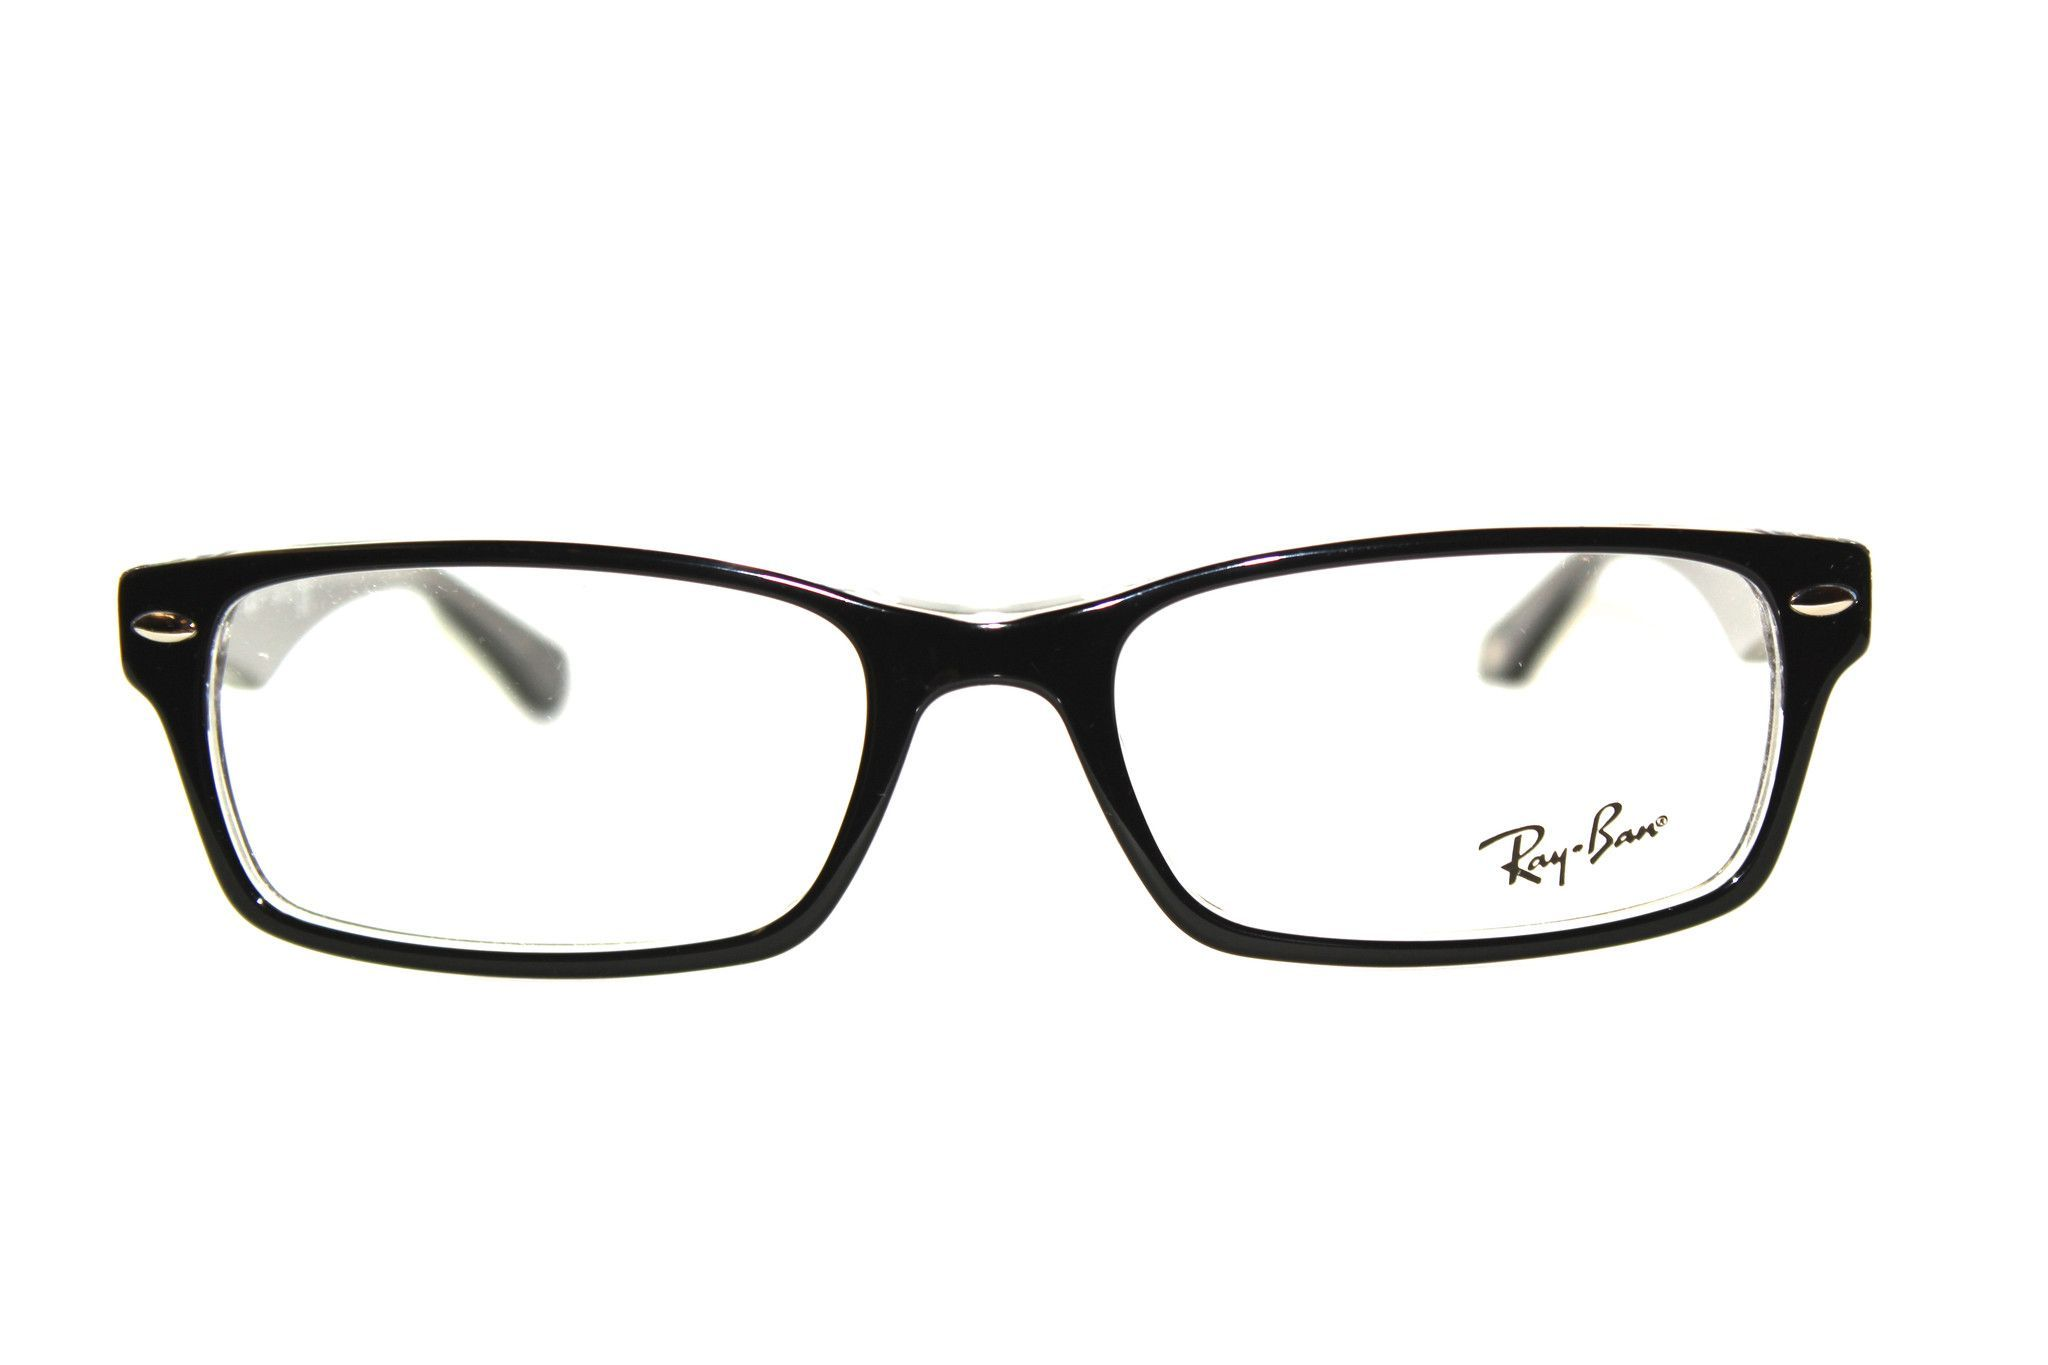 ddeea7348d5 Ray-Ban RX5206 2034 - Size  52-18-140 or 54-18-145 Color  Top Black on  Transparent - Style  Metallic Ray-Ban Logo on Temples - Acetate Frame -  Model  5206 ...